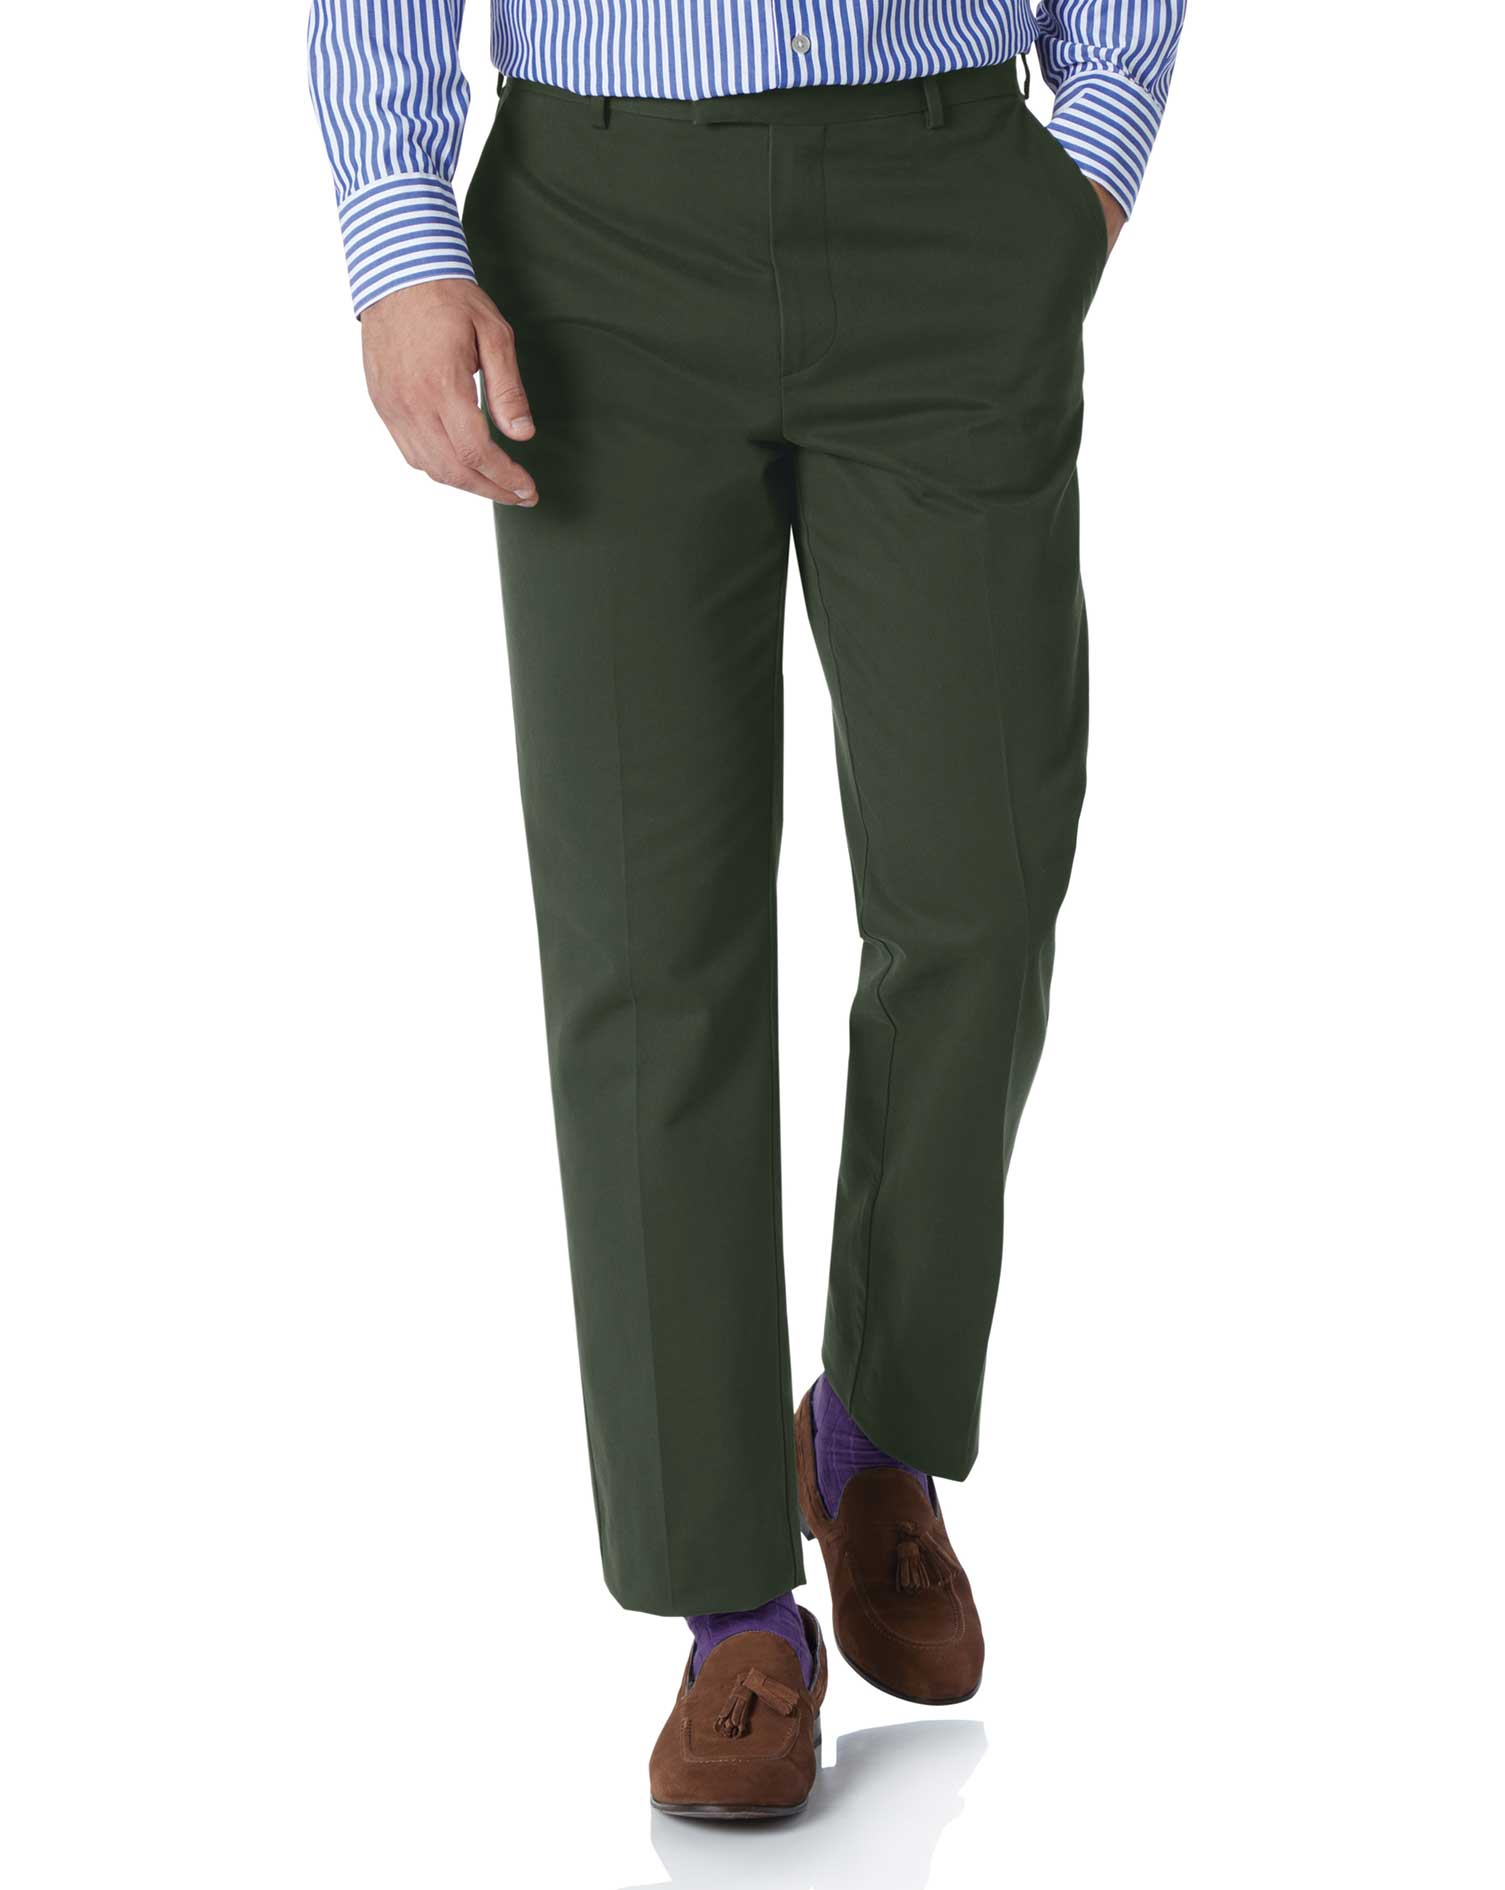 Dark Green Classic Fit Flat Front Non-Iron Cotton Chino Trousers Size W36 L29 by Charles Tyrwhitt